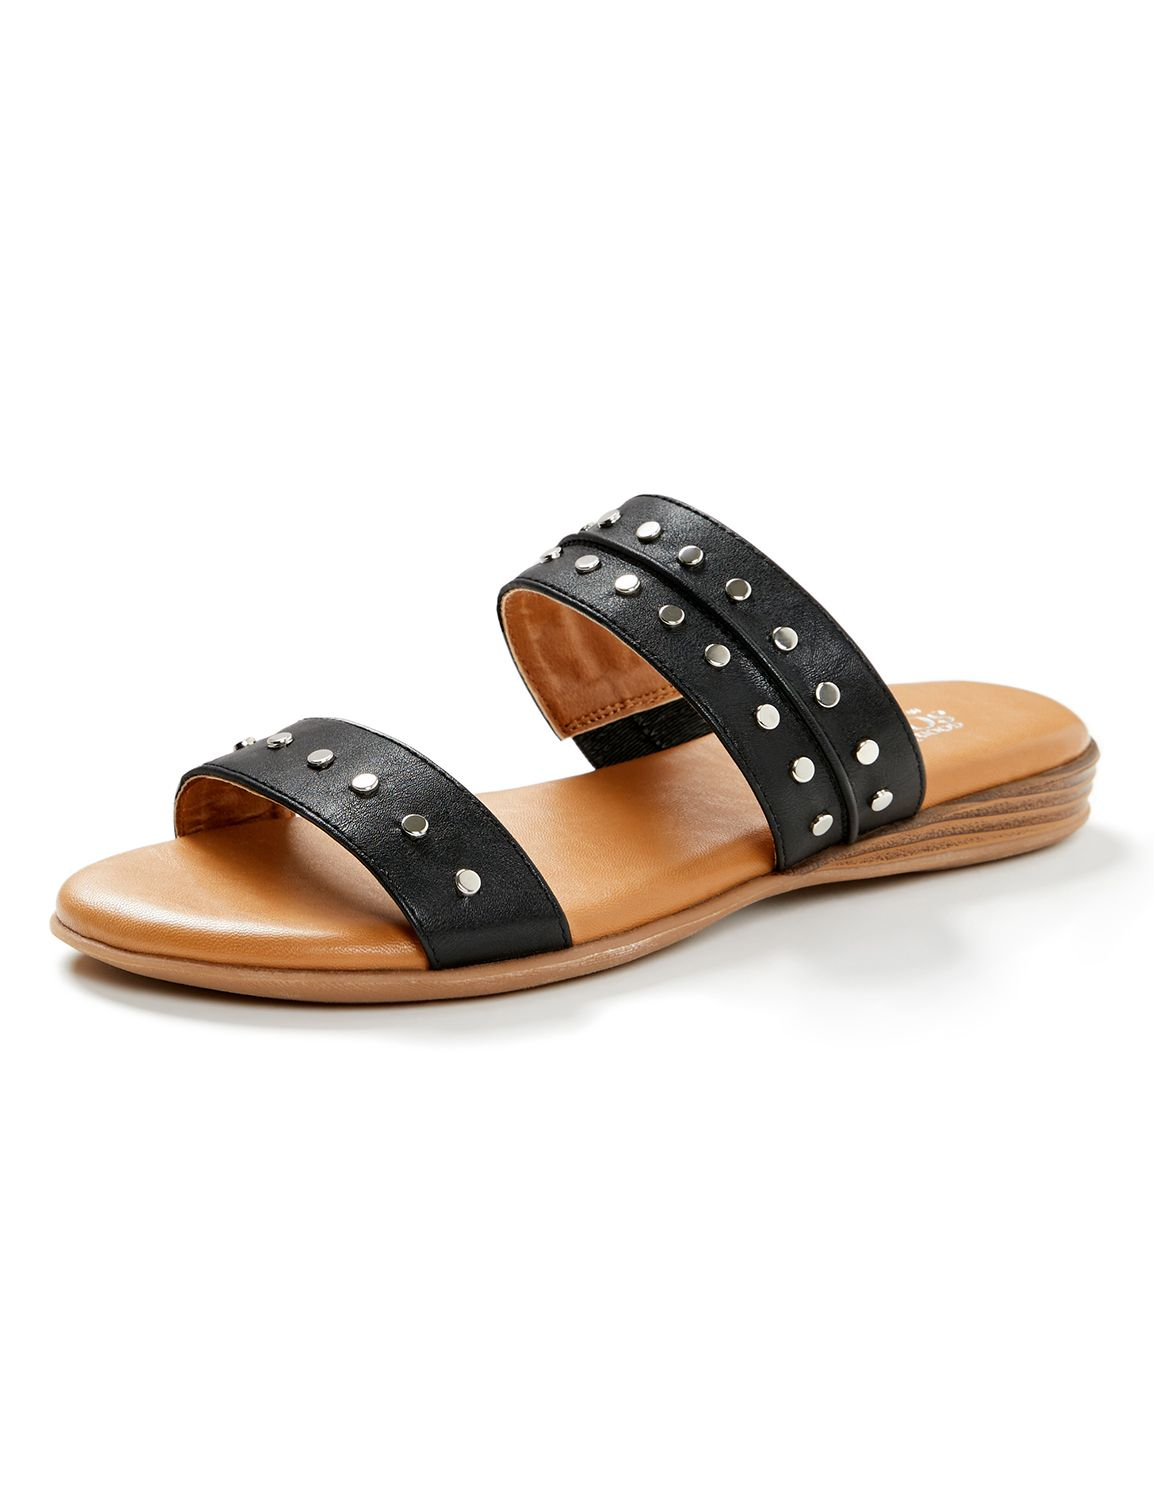 Good Soles Studded Sandal Double Strap w/ Nail Heads Slip on MP-300097247